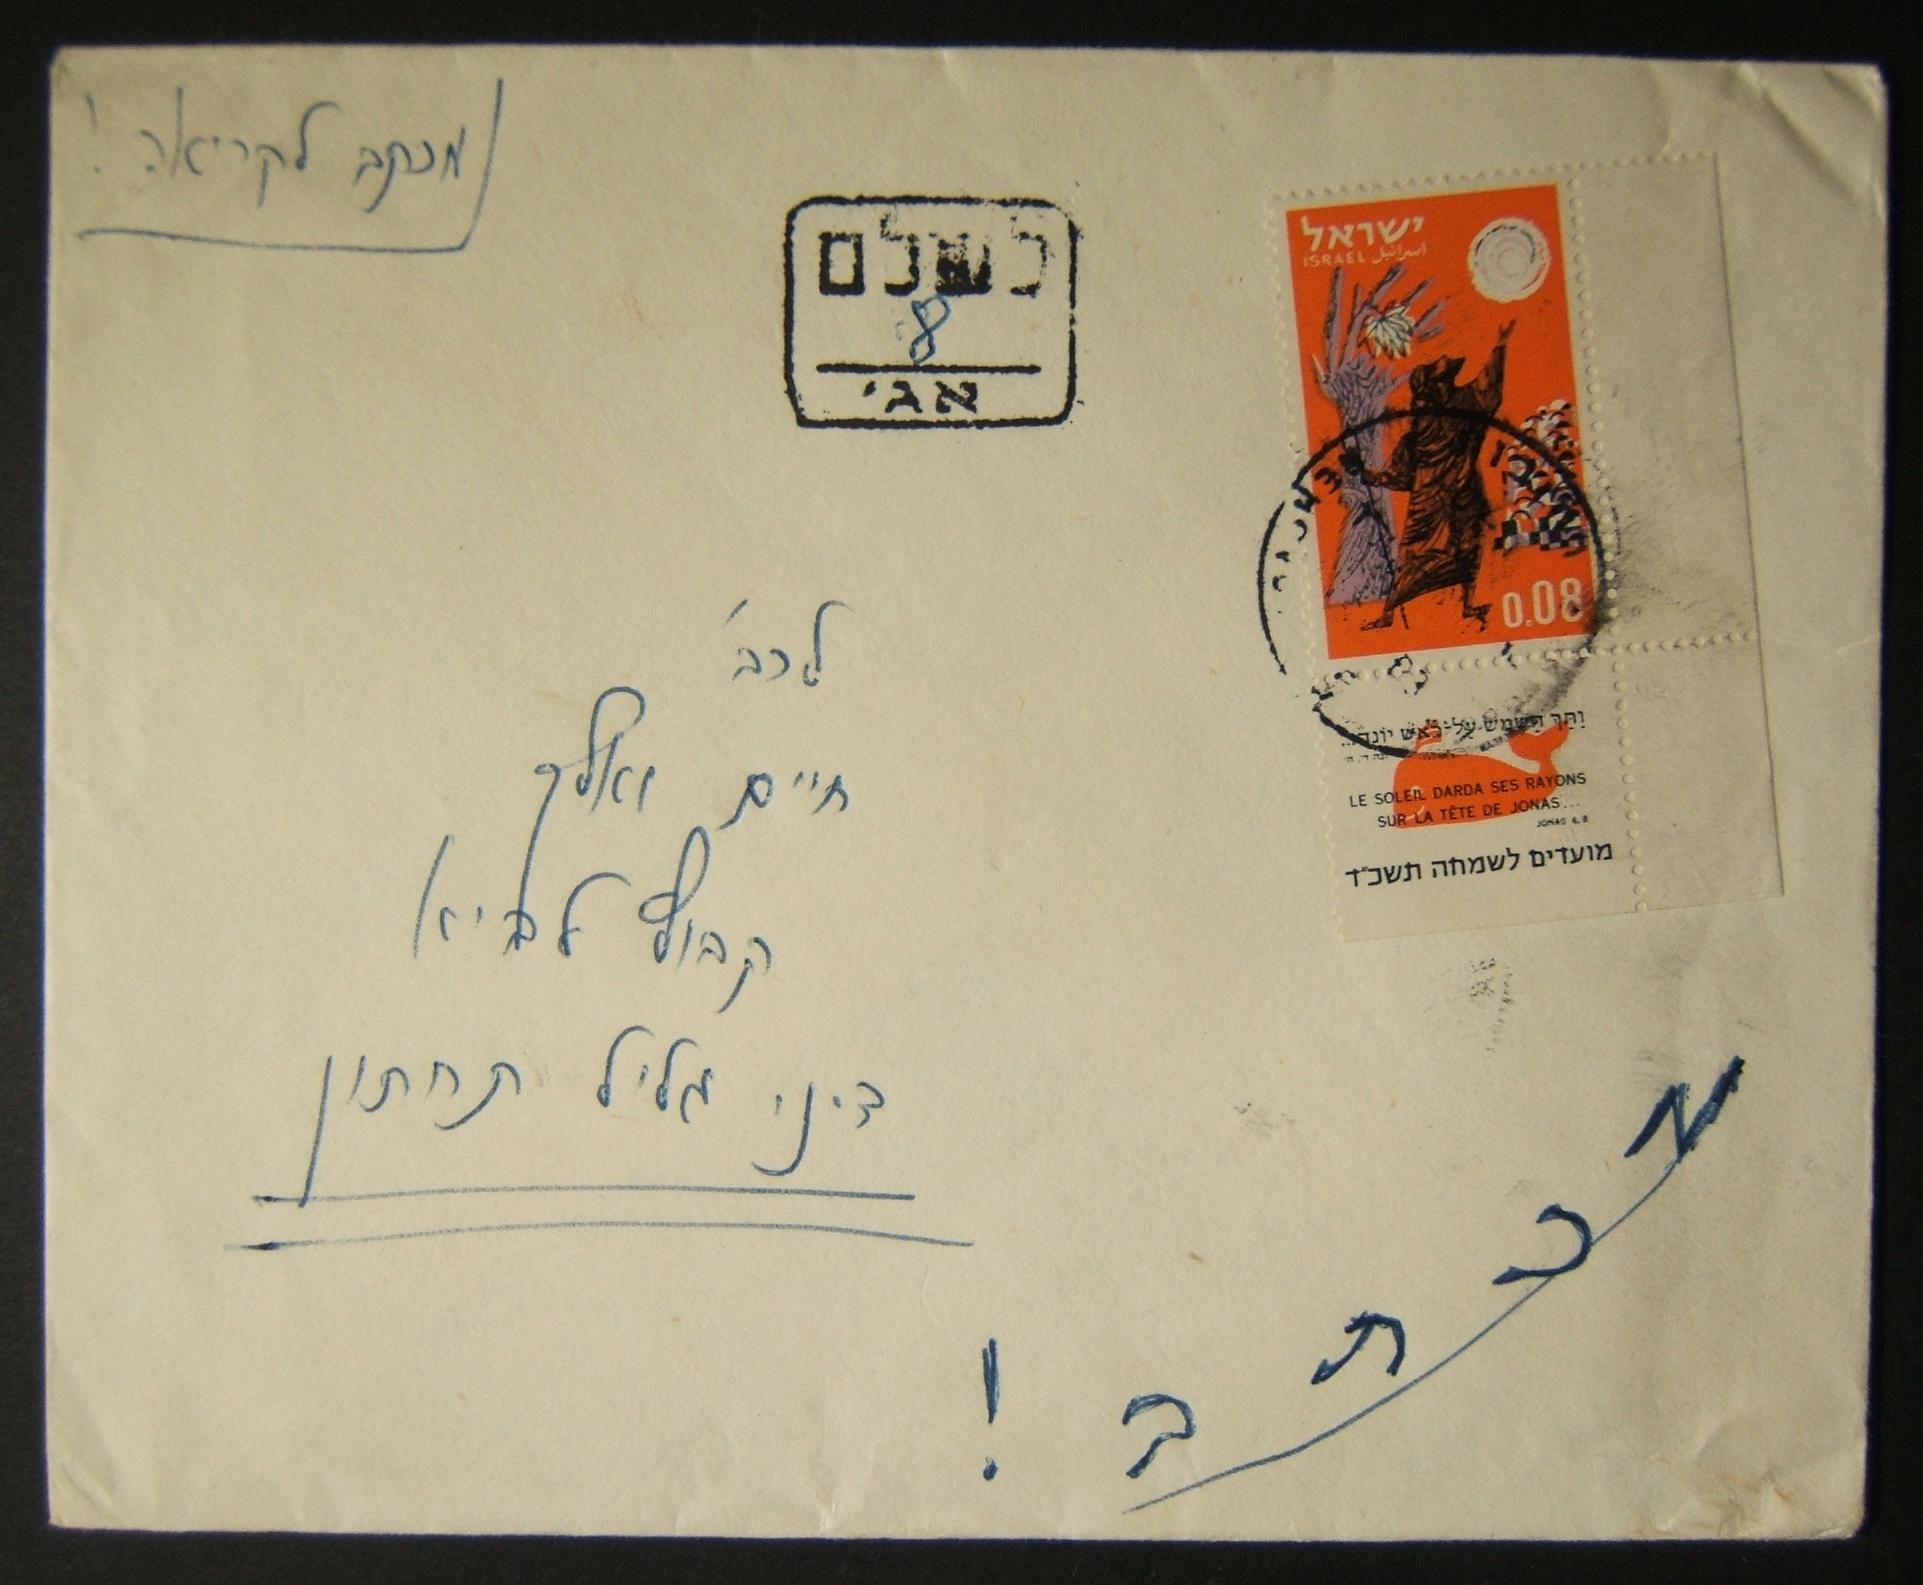 1963 domestic taxed cover: Weizman Institute stationary cover ex RECHOVOT to KIBBUTZ LAVI franked 0.08L at the DO-11 period printed matter rate using tabbed 1963 New Year (Ba273) b